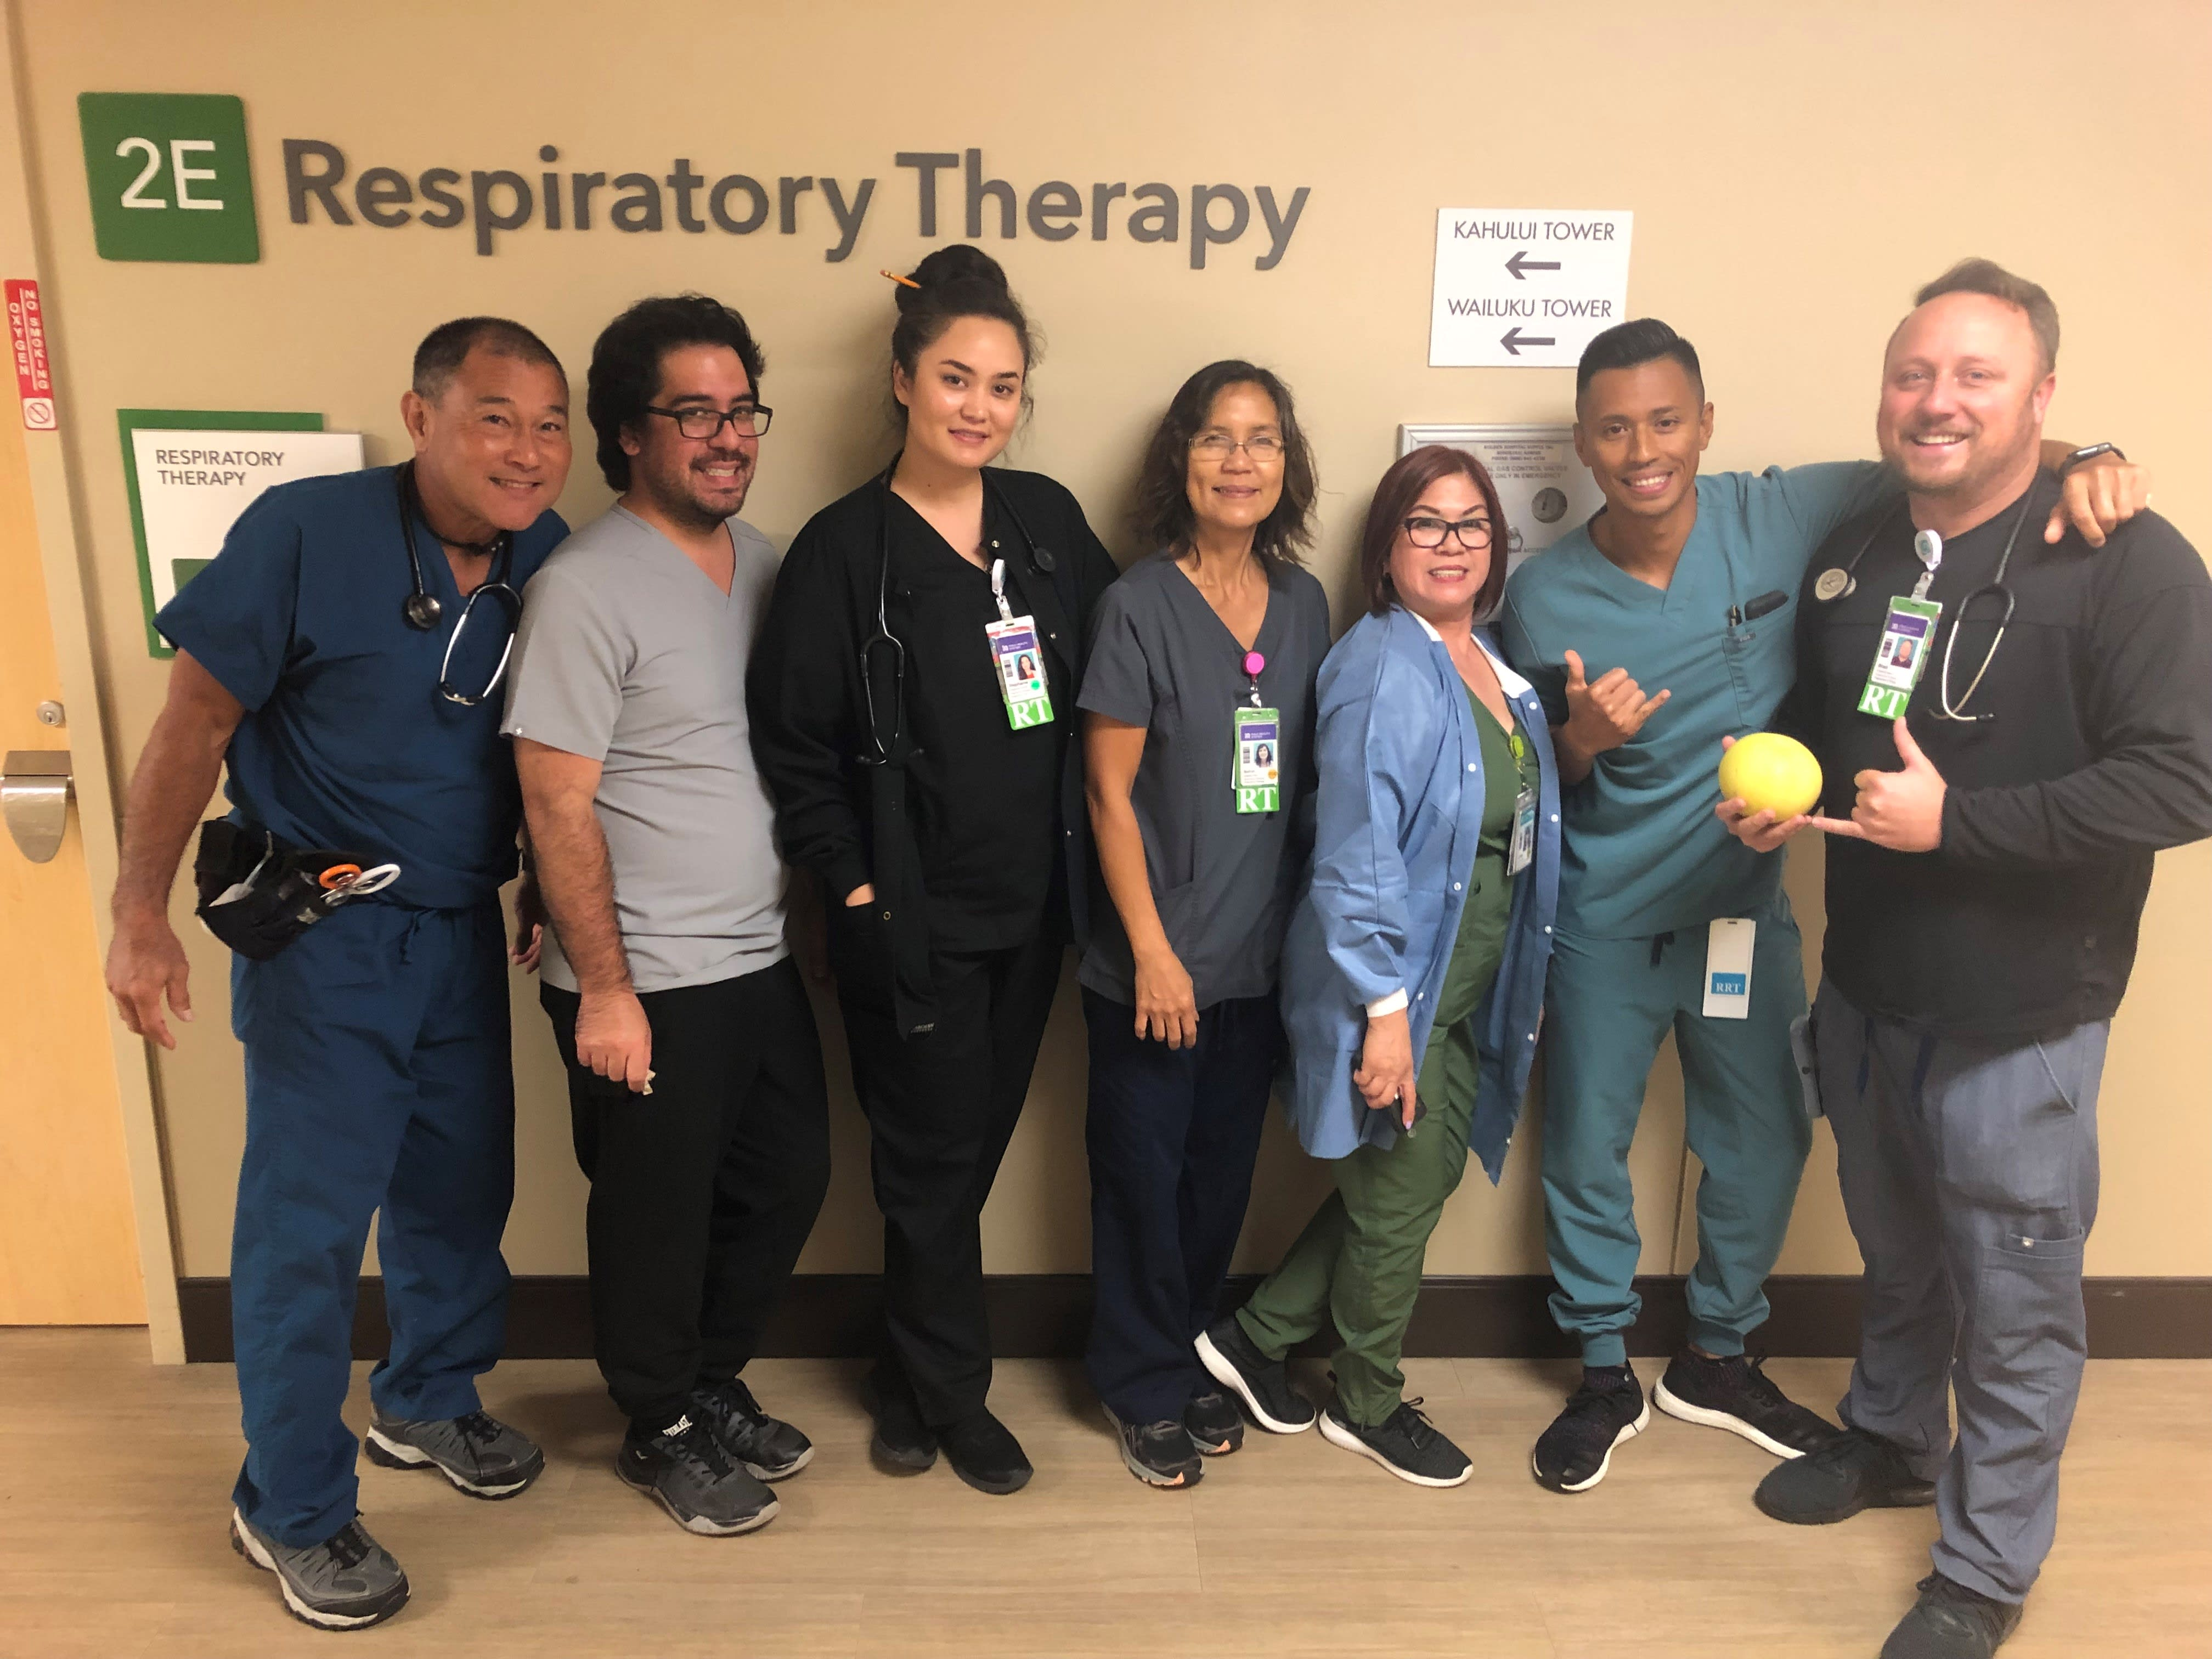 Respiratory Therapy Team